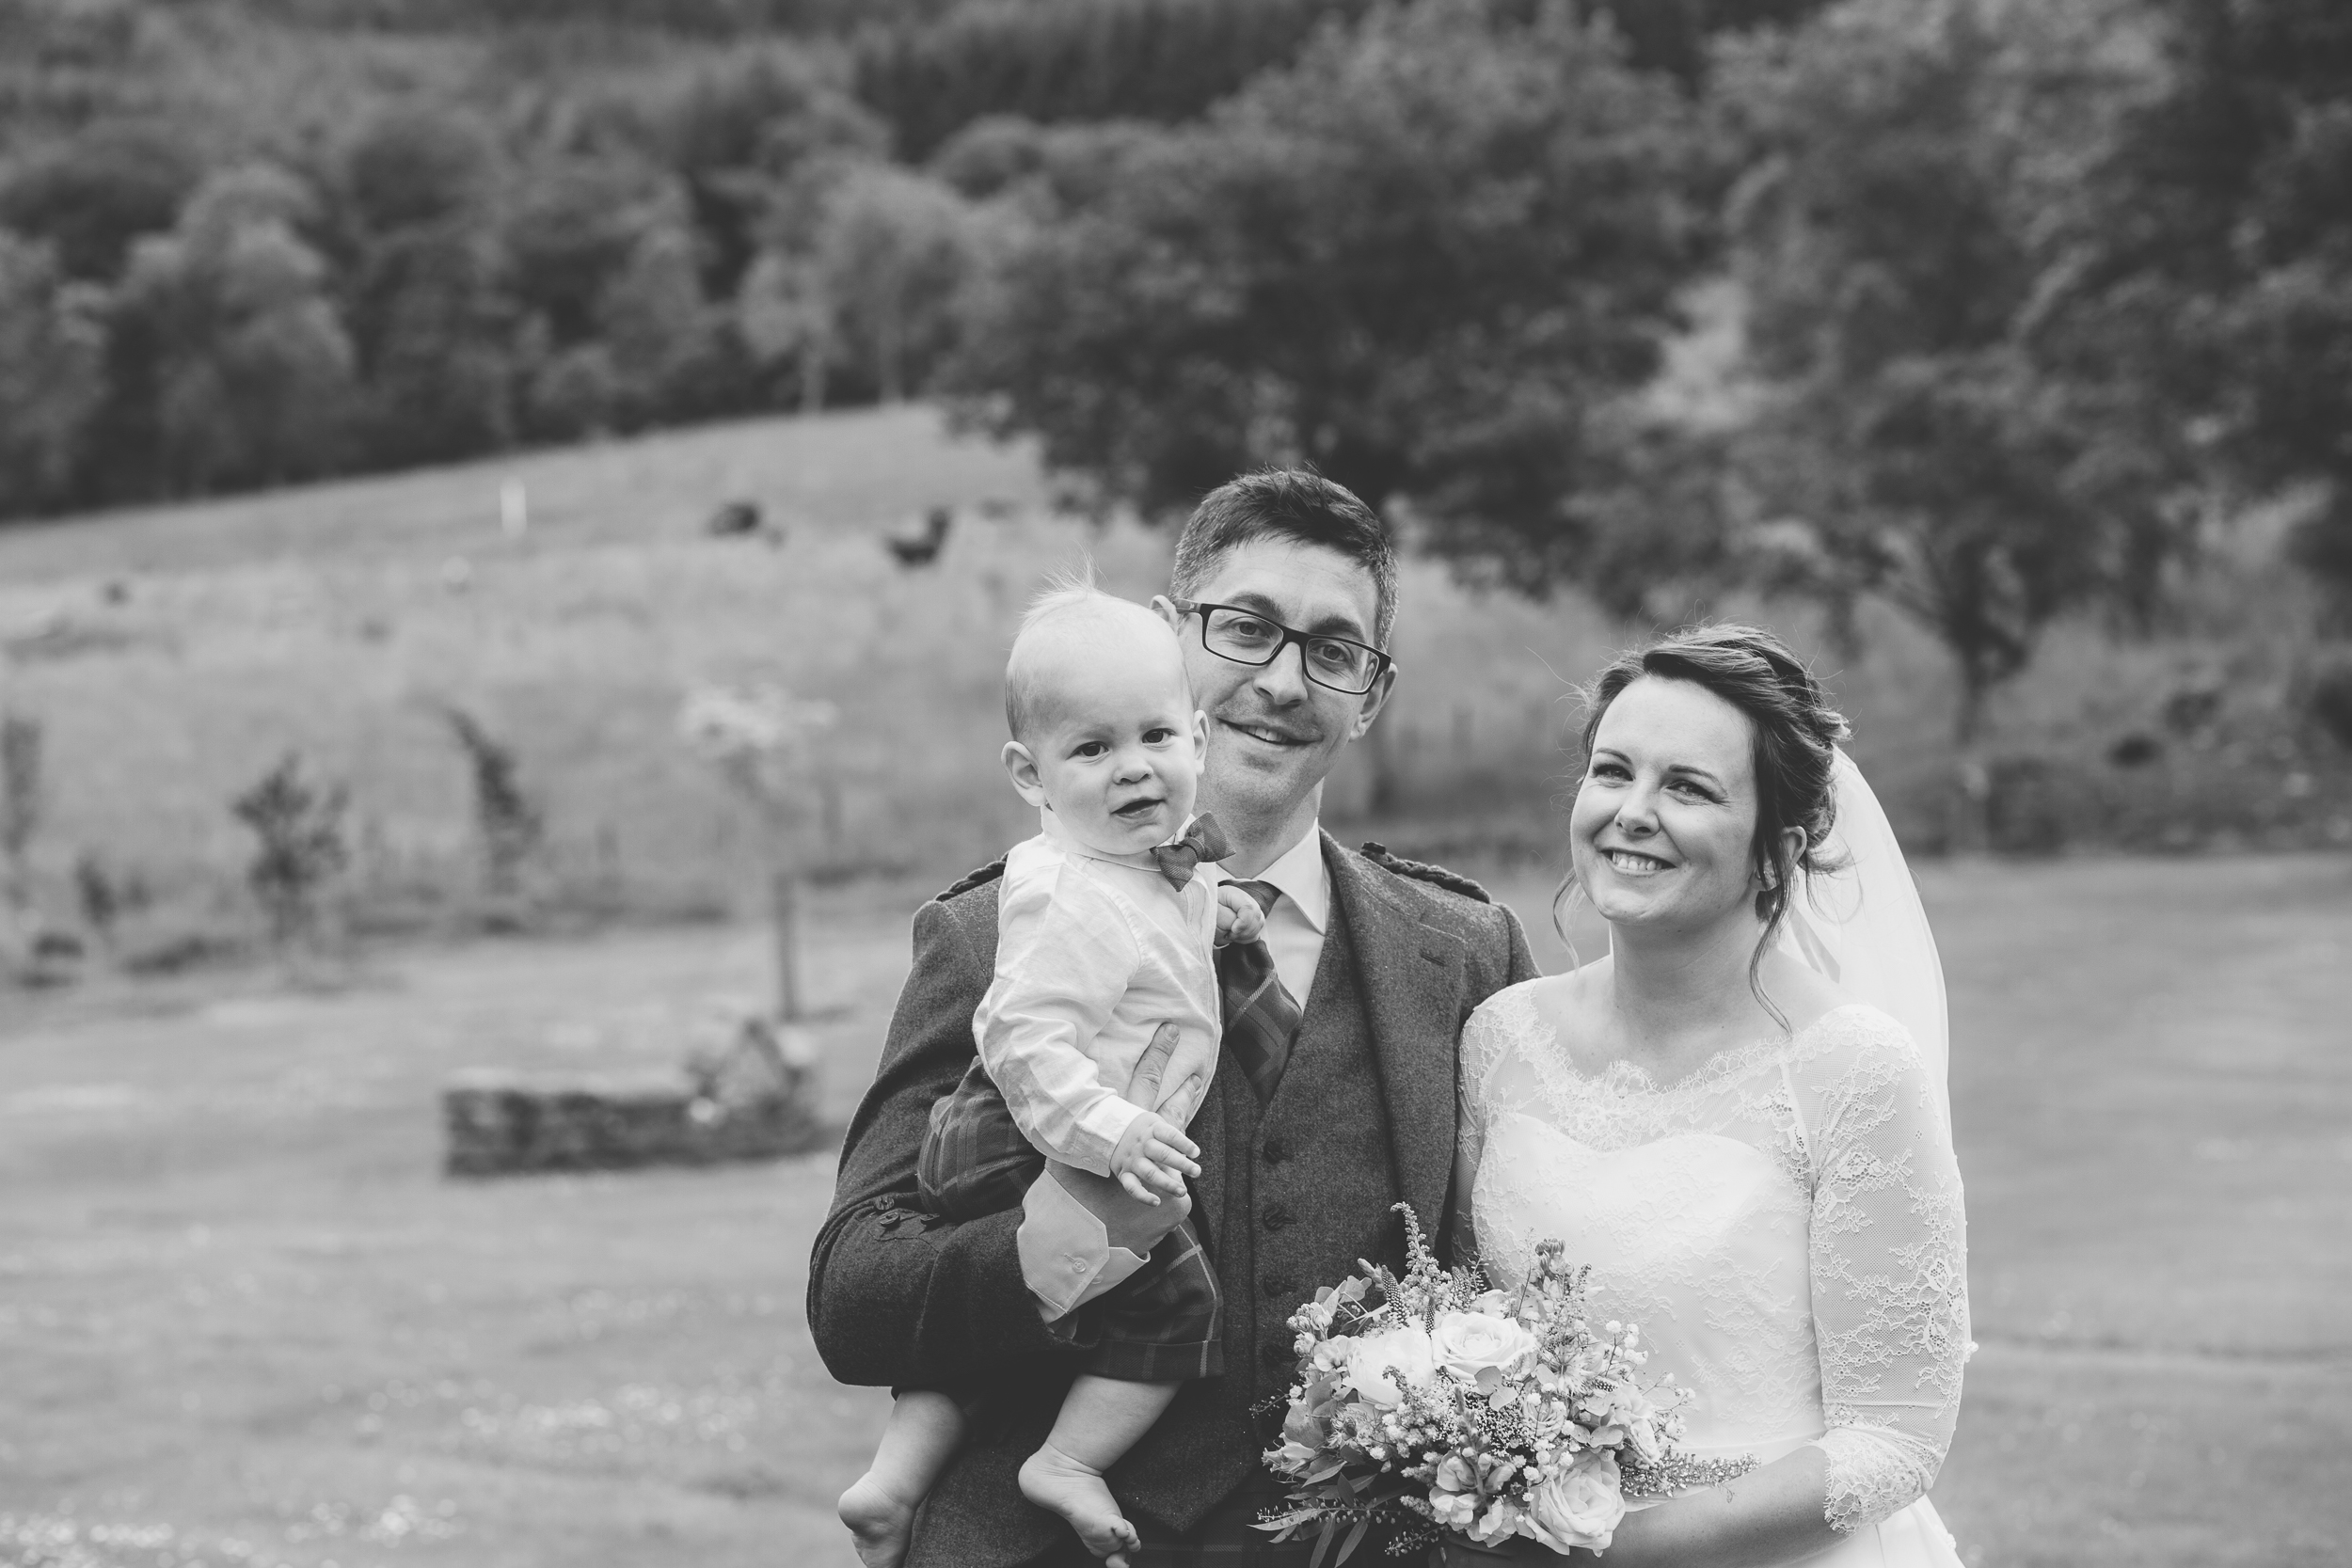 aberdeenweddingphotographers (15 of 20).jpg